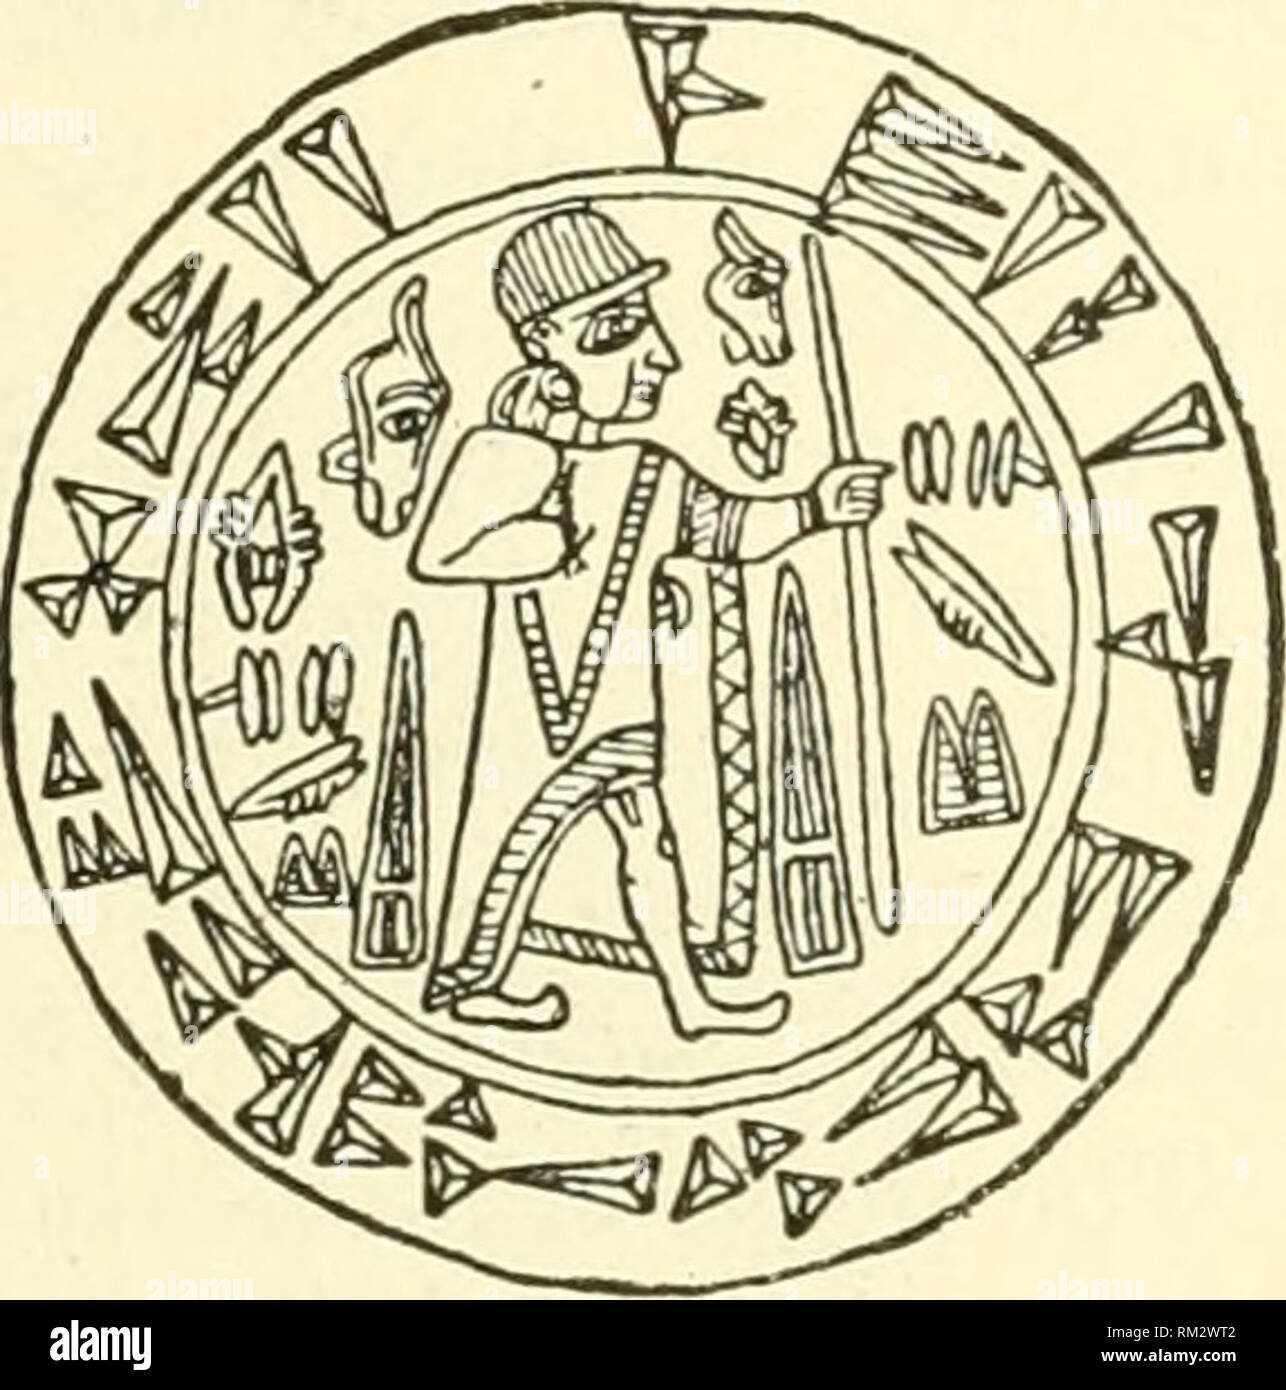 . Annual report of the Board of Regents of the Smithsonian Institution. Smithsonian Institution; Smithsonian Institution. Archives; Discoveries in science. THE ANCIENT HITTITES. 691 close attention, have been In vain. The cause of faihire is the meager t)r indefinite information concerning the Hittites on the part of their neighbors or successors, and the puzzling complications of their sys- tem of writing. It is approximately estimated that there are already known more than 200 signs in their system, and this number is increas- ing with each new inscription. As far as can l)c inferred from th Stock Photo